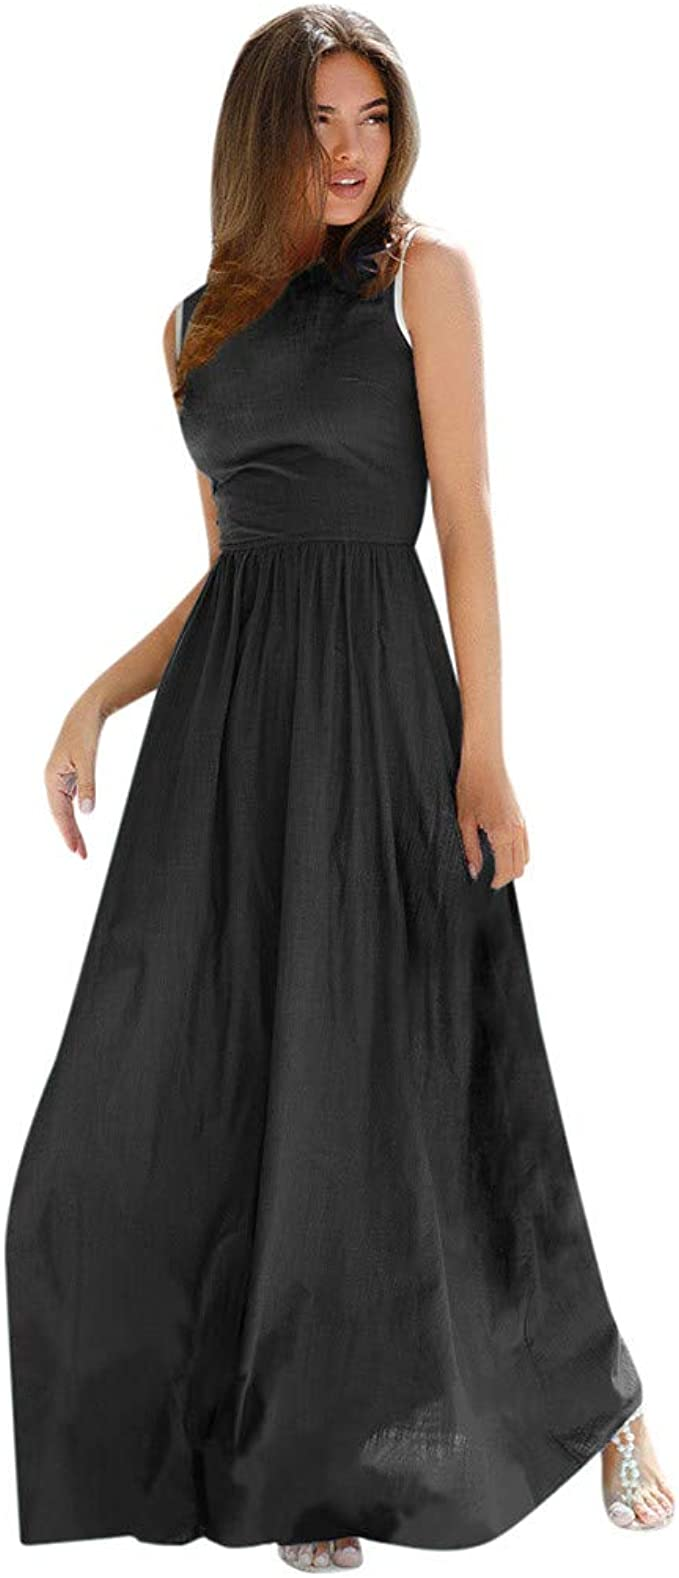 AMhomely Womens Casual Sling Dresses Chiffon Bohemian Sleeveless Knee Length Dress Party Dress Party Elegant Dress Ladies Work Dresses Clubbing Dresses Evening Gowns Summer Dresses